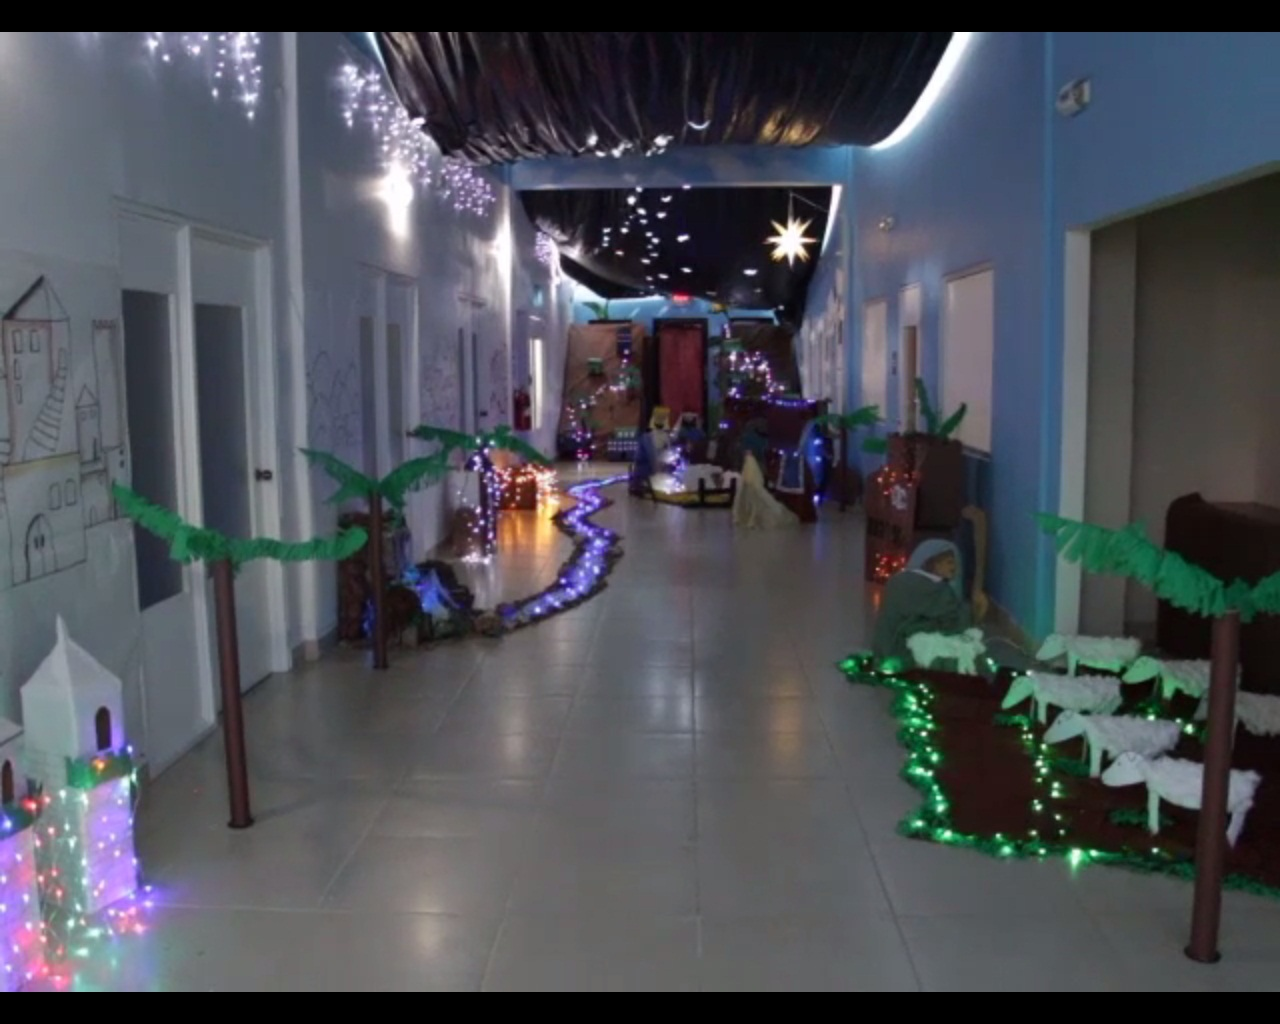 K h m h s nicu wins christmas decorating competition for H h christmas decorations